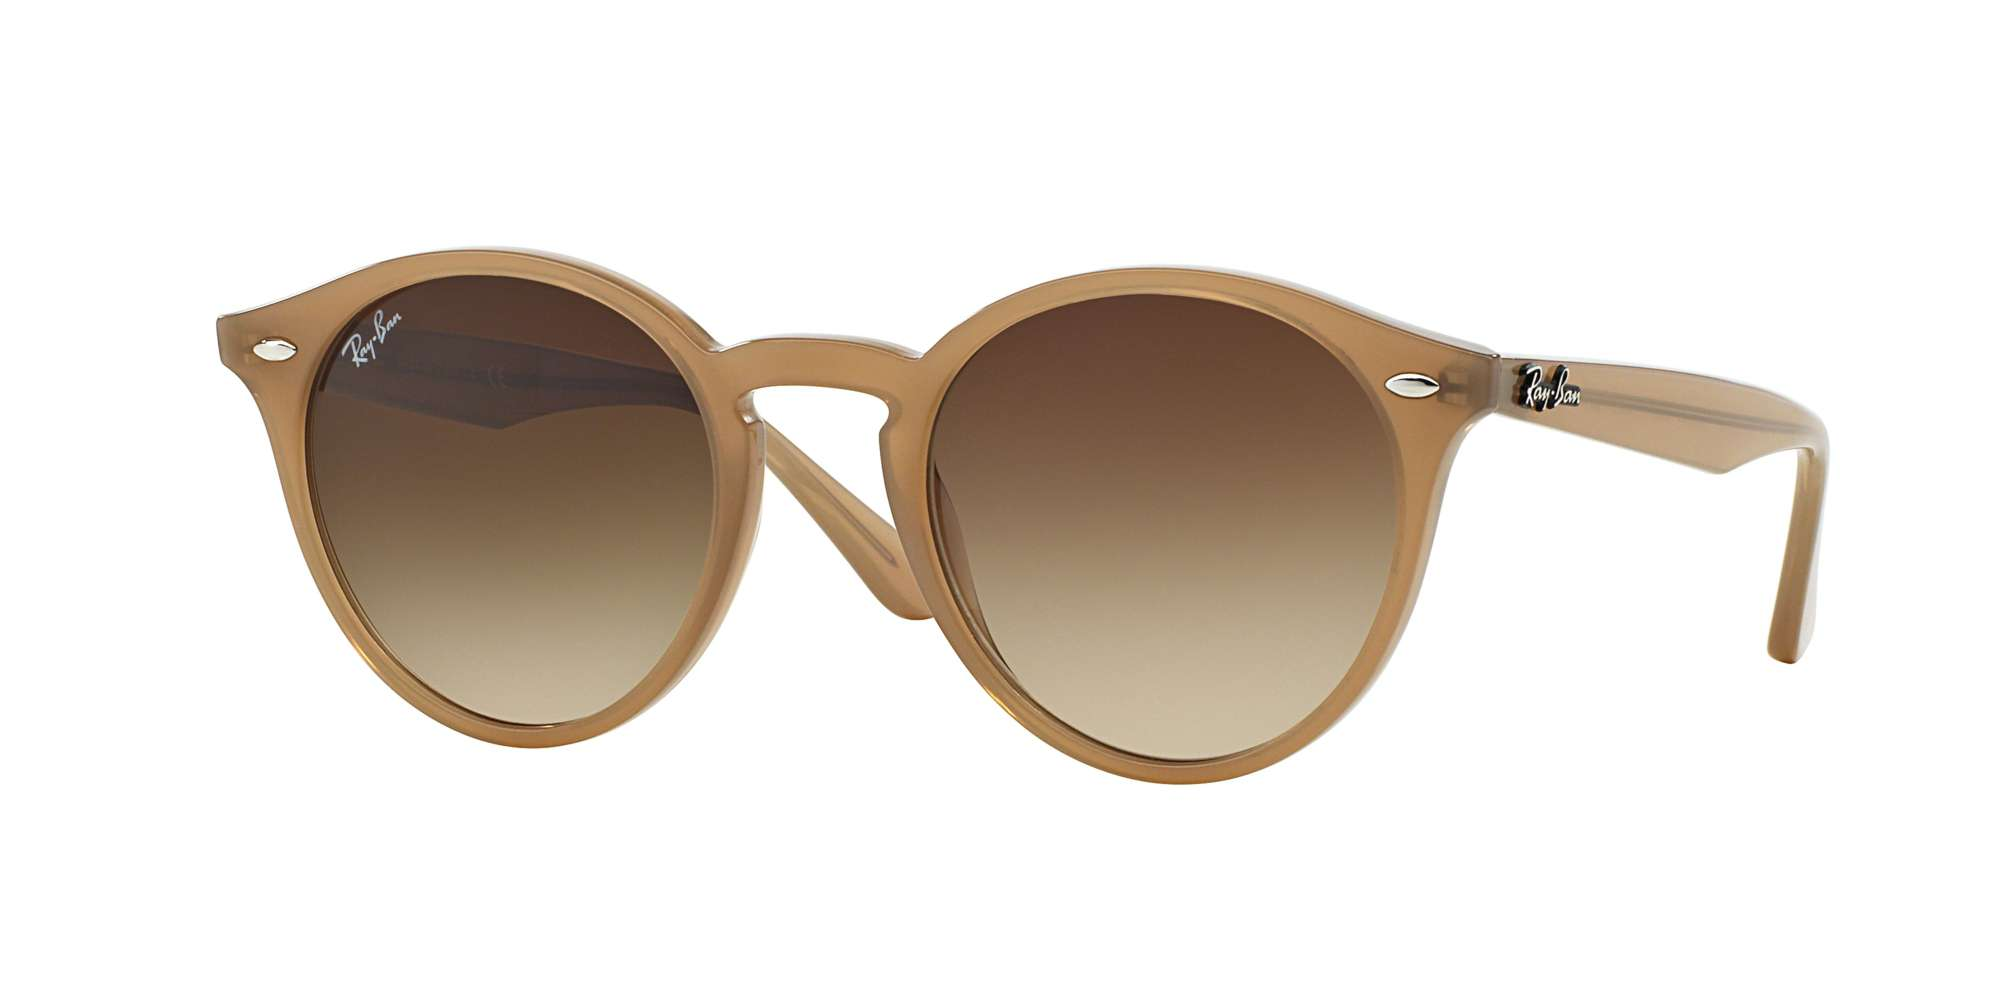 TURTLEDOVE / BROWN GRADIENT lenses